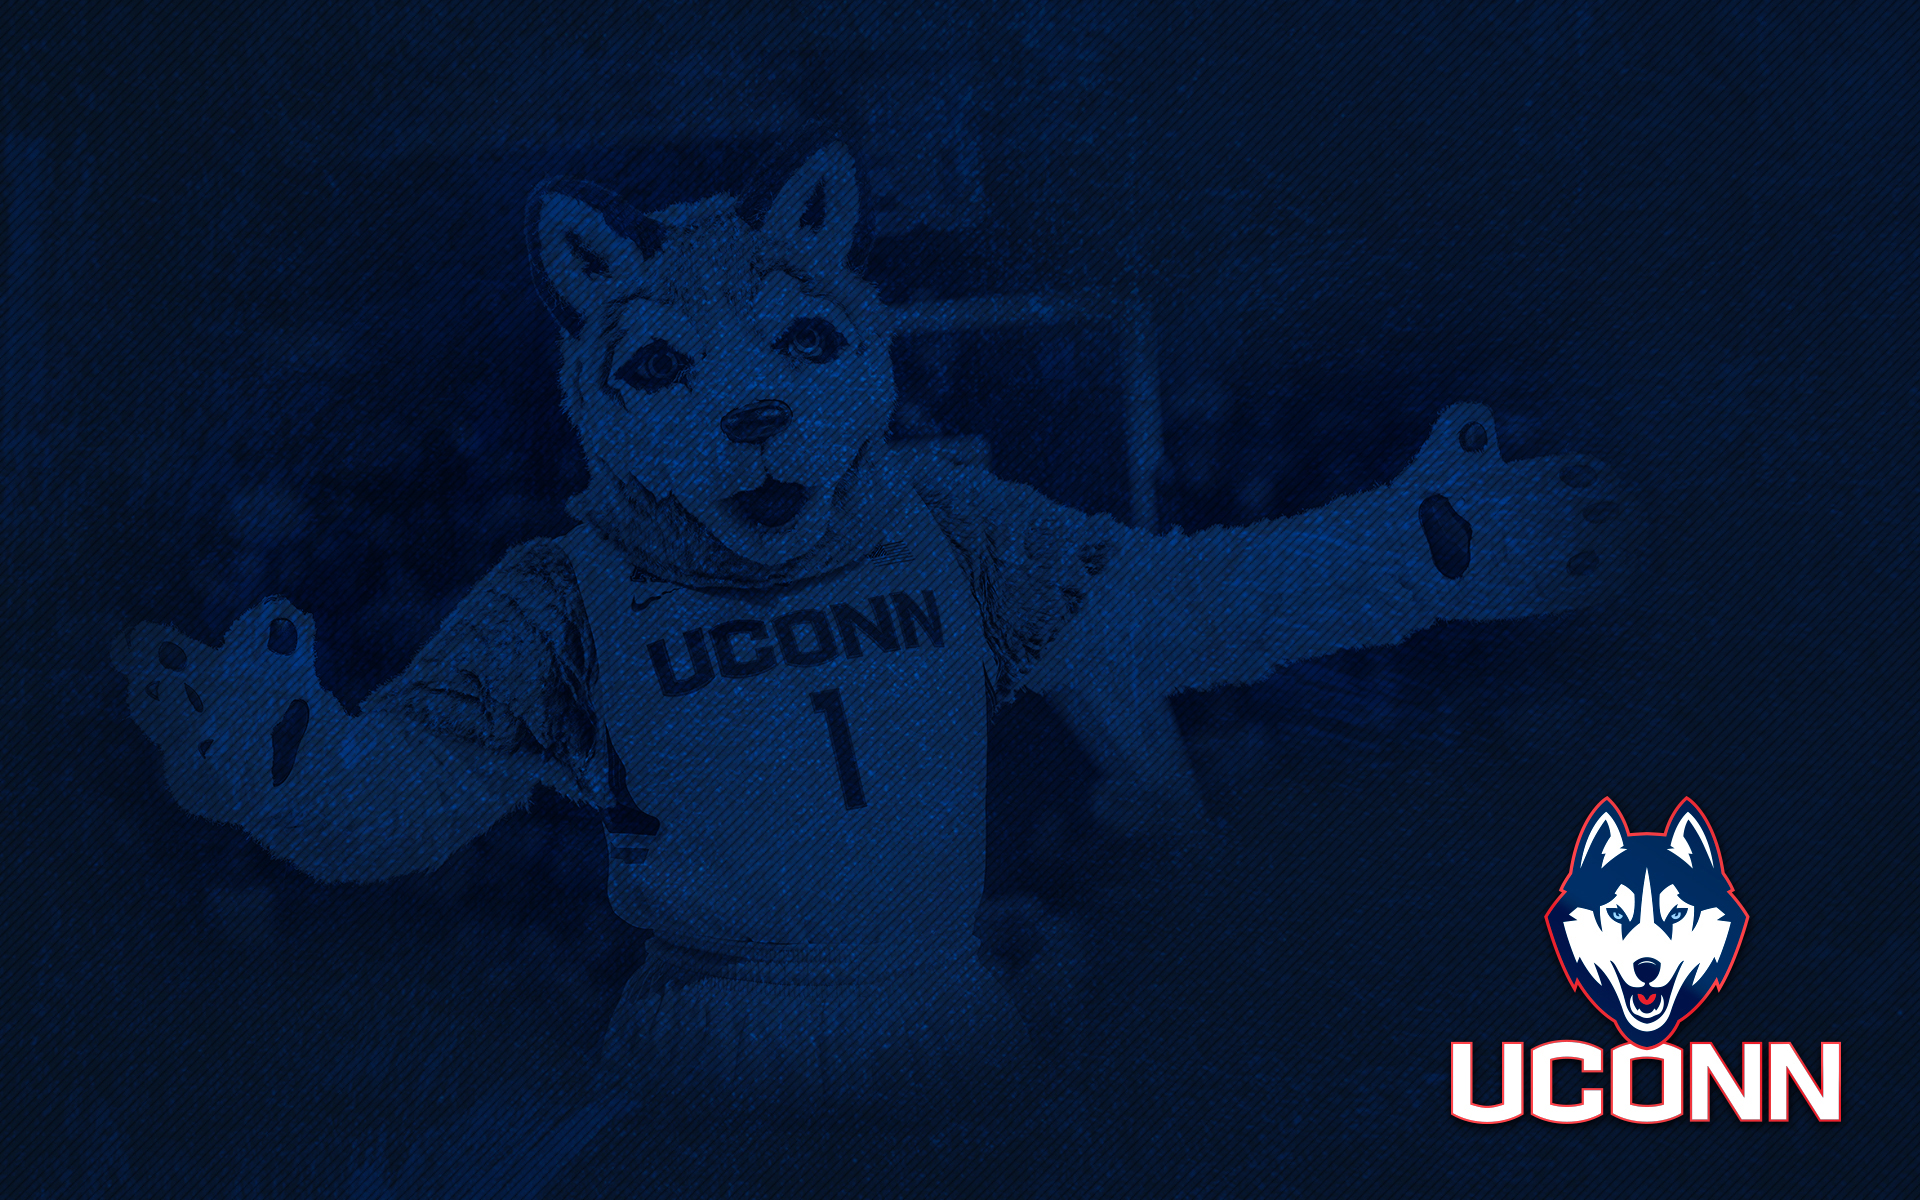 Uconn Husky Wallpaper